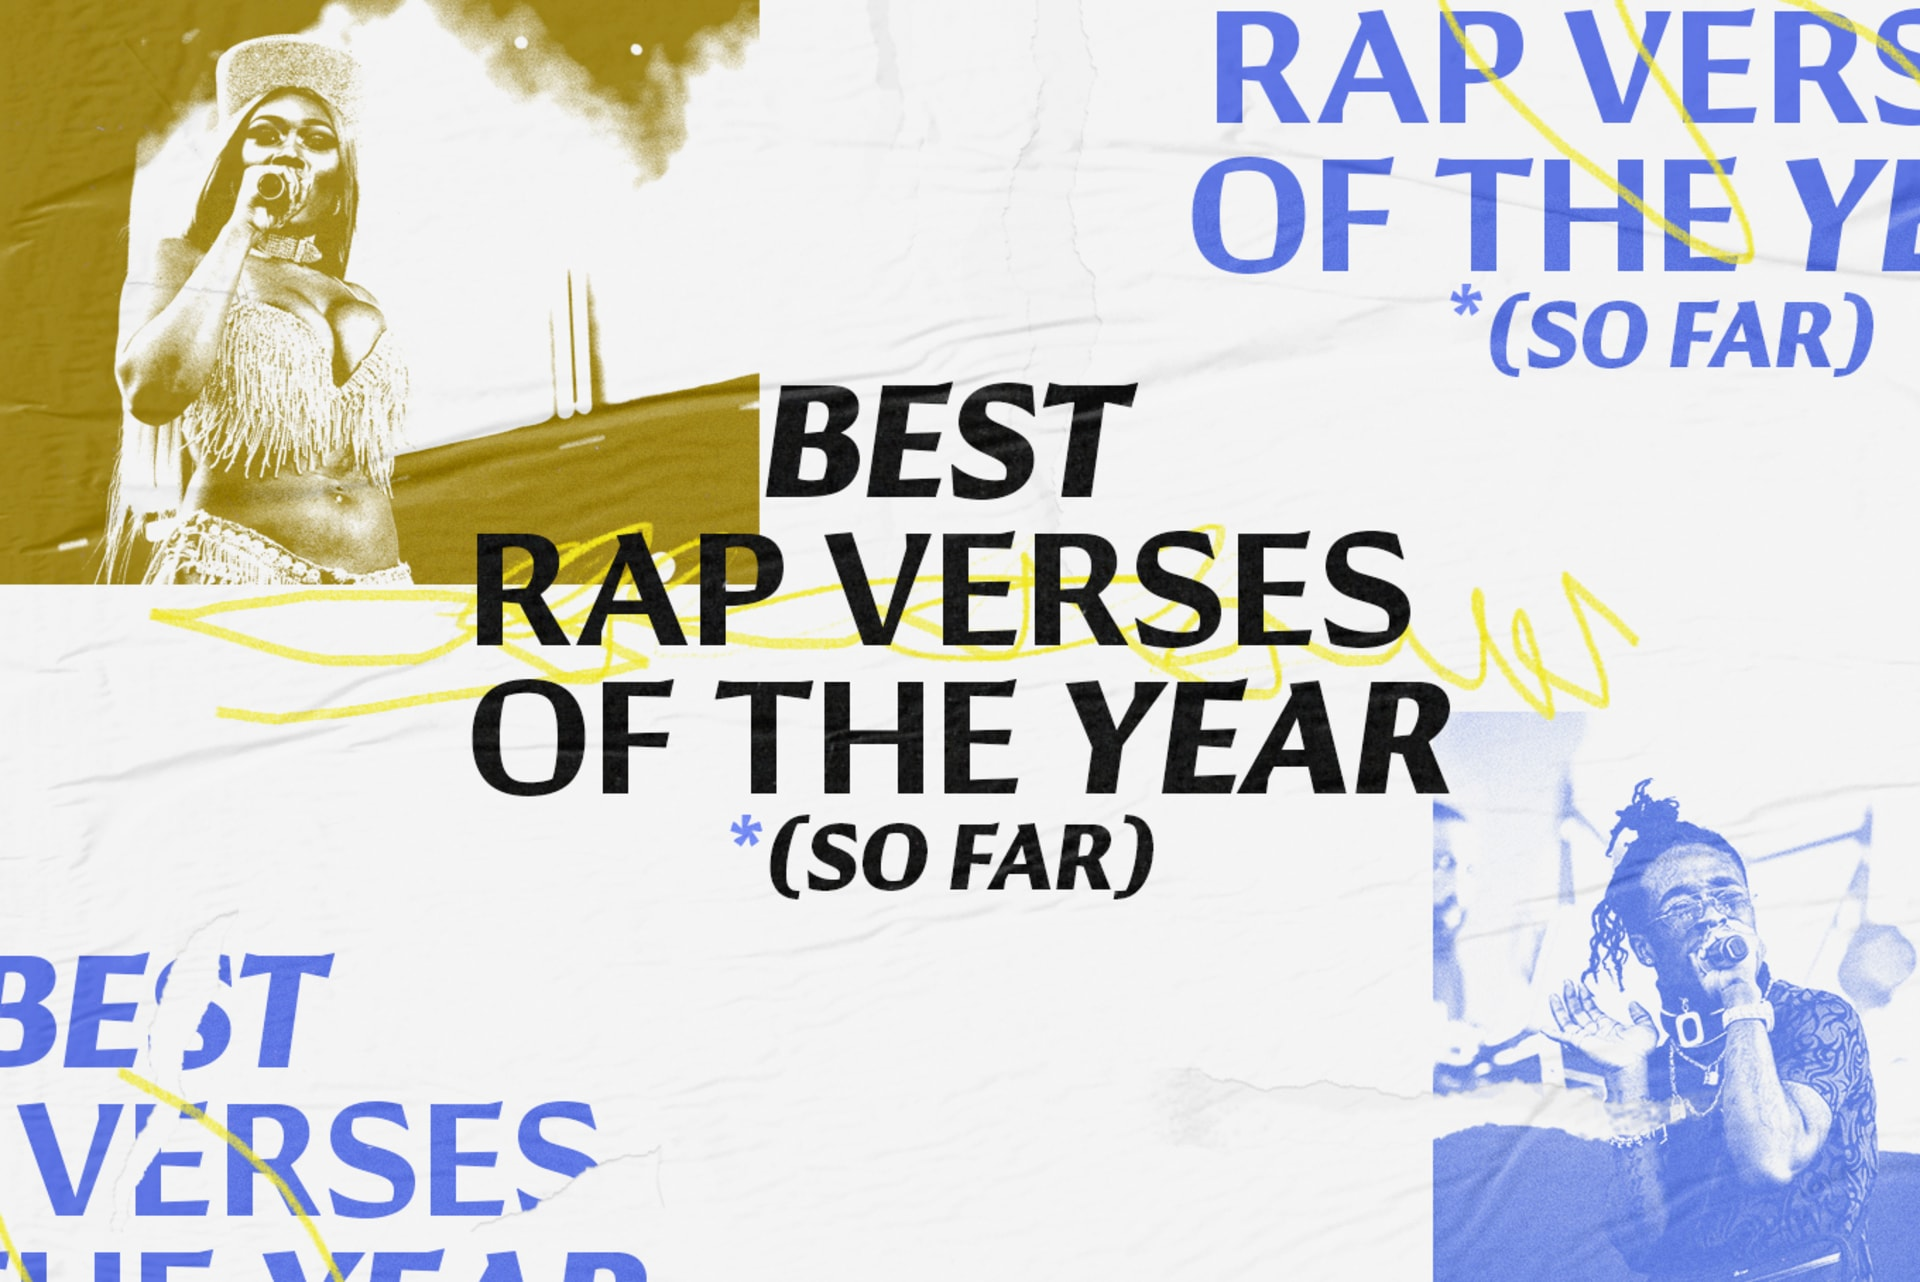 Best Rap Verses of 2019 (So Far): Top Hip-Hop Verses of the